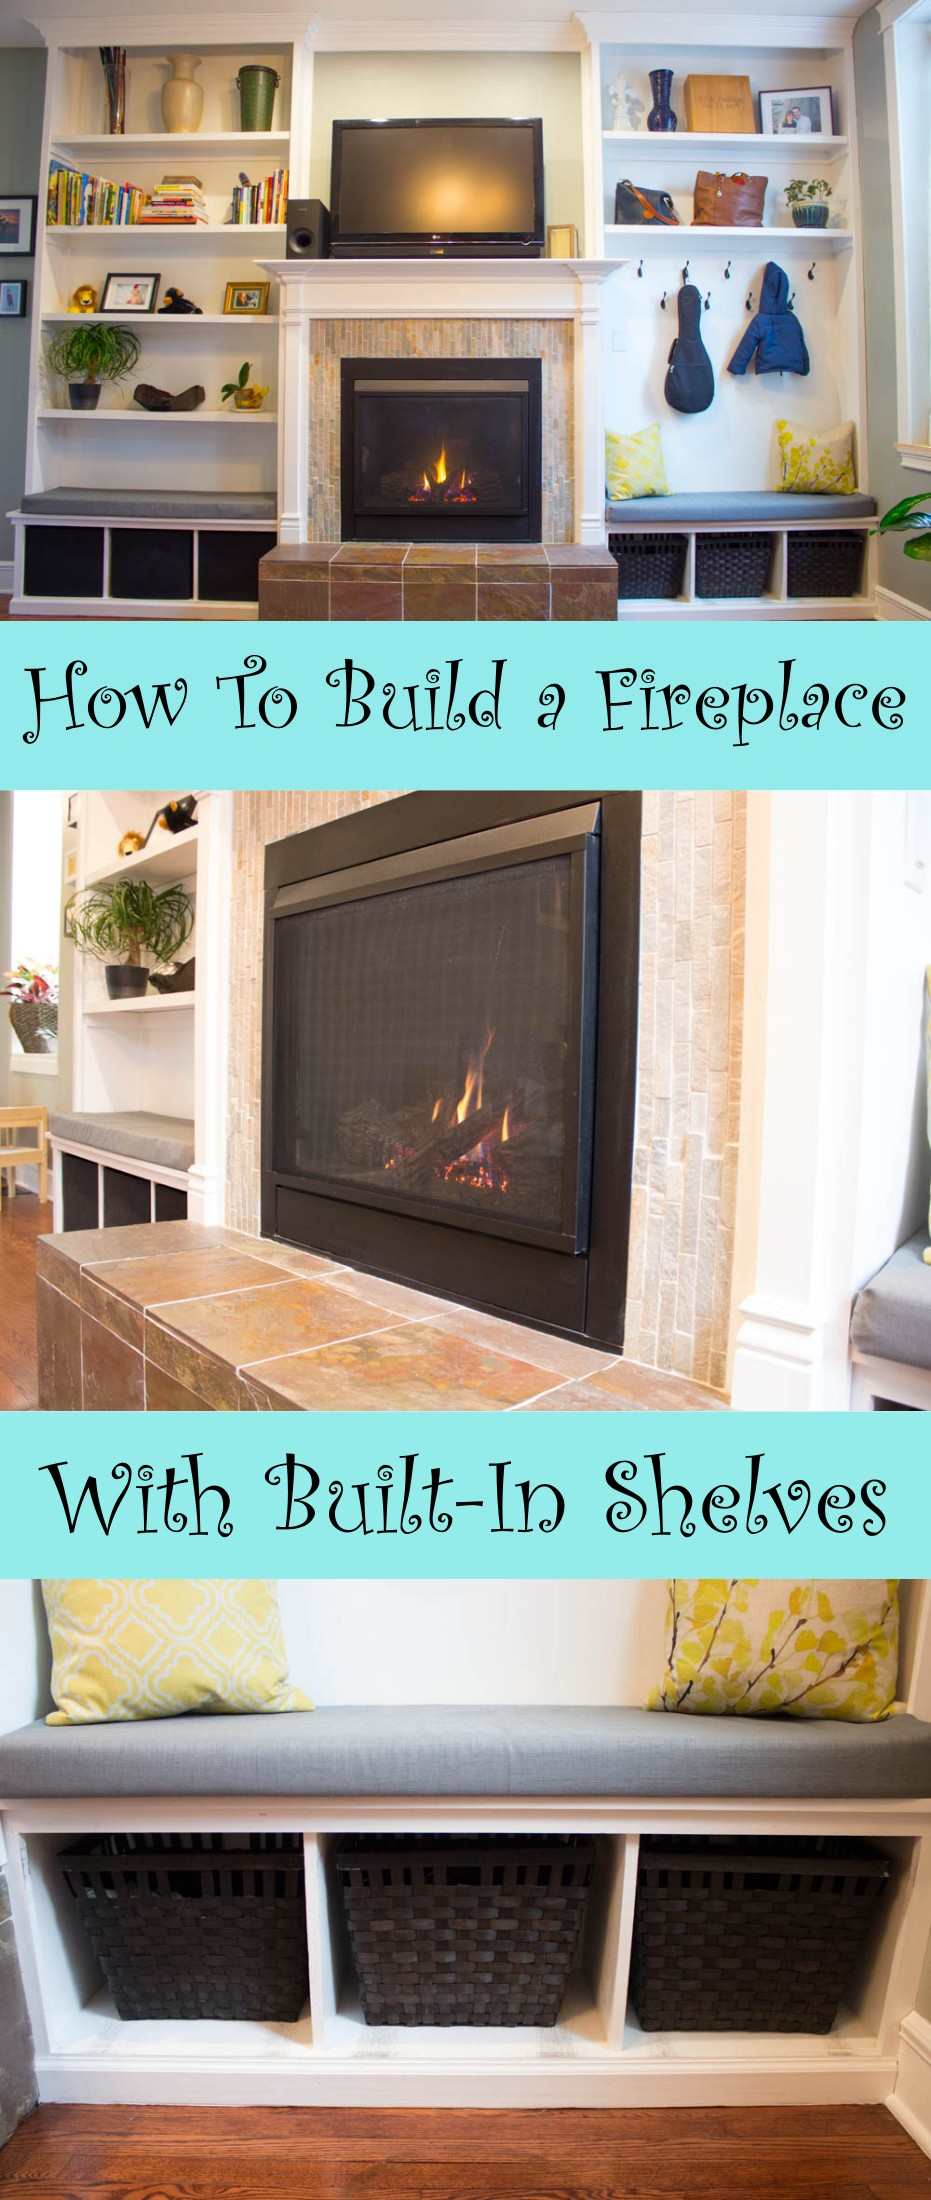 7 steps to DIY the fireplace, built in benches, and built in shelves of your dreams!